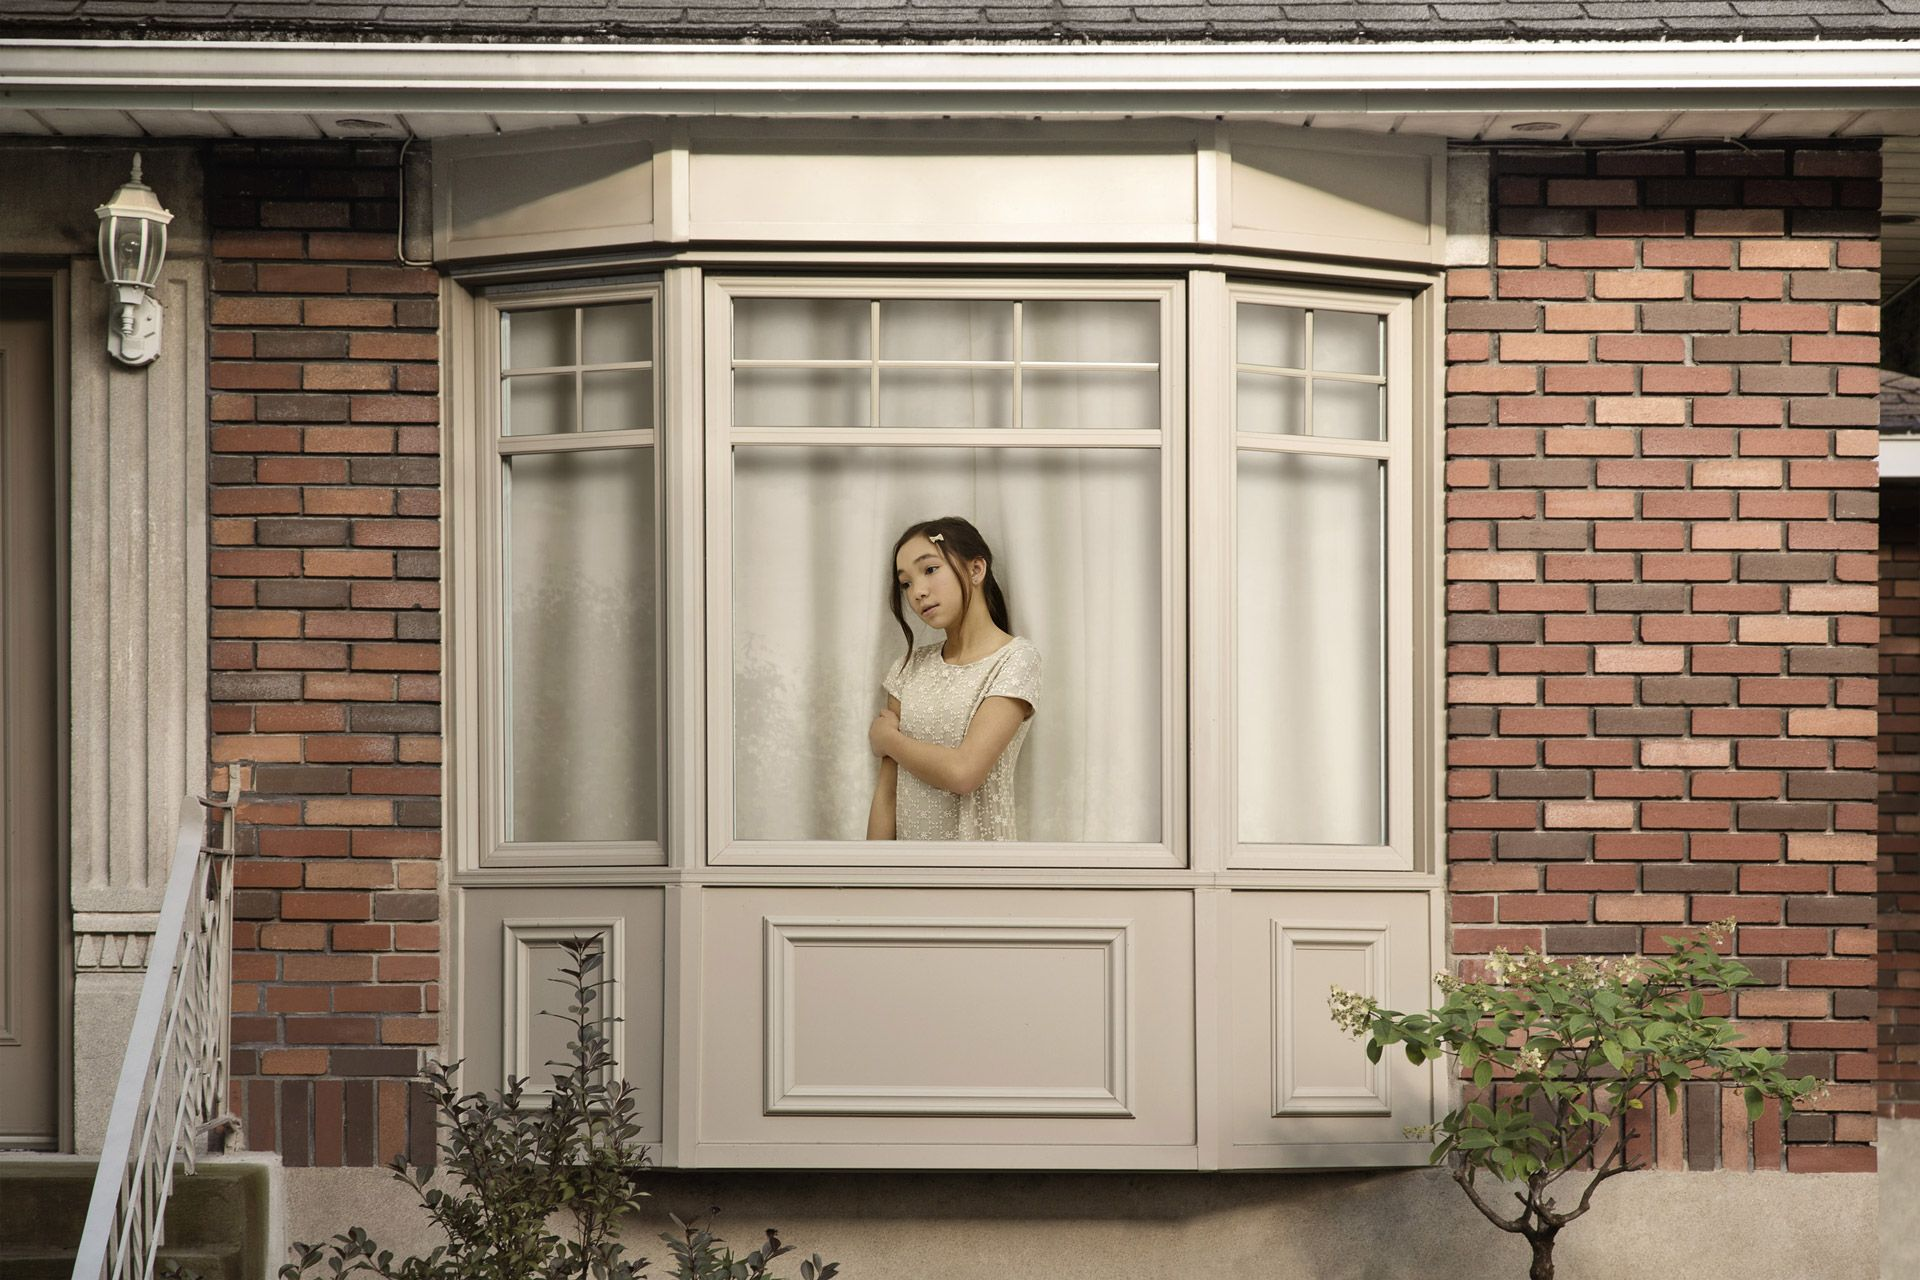 young asian girl dressed in white inside house looking sadly out the window by Simon Duhamel for In Between